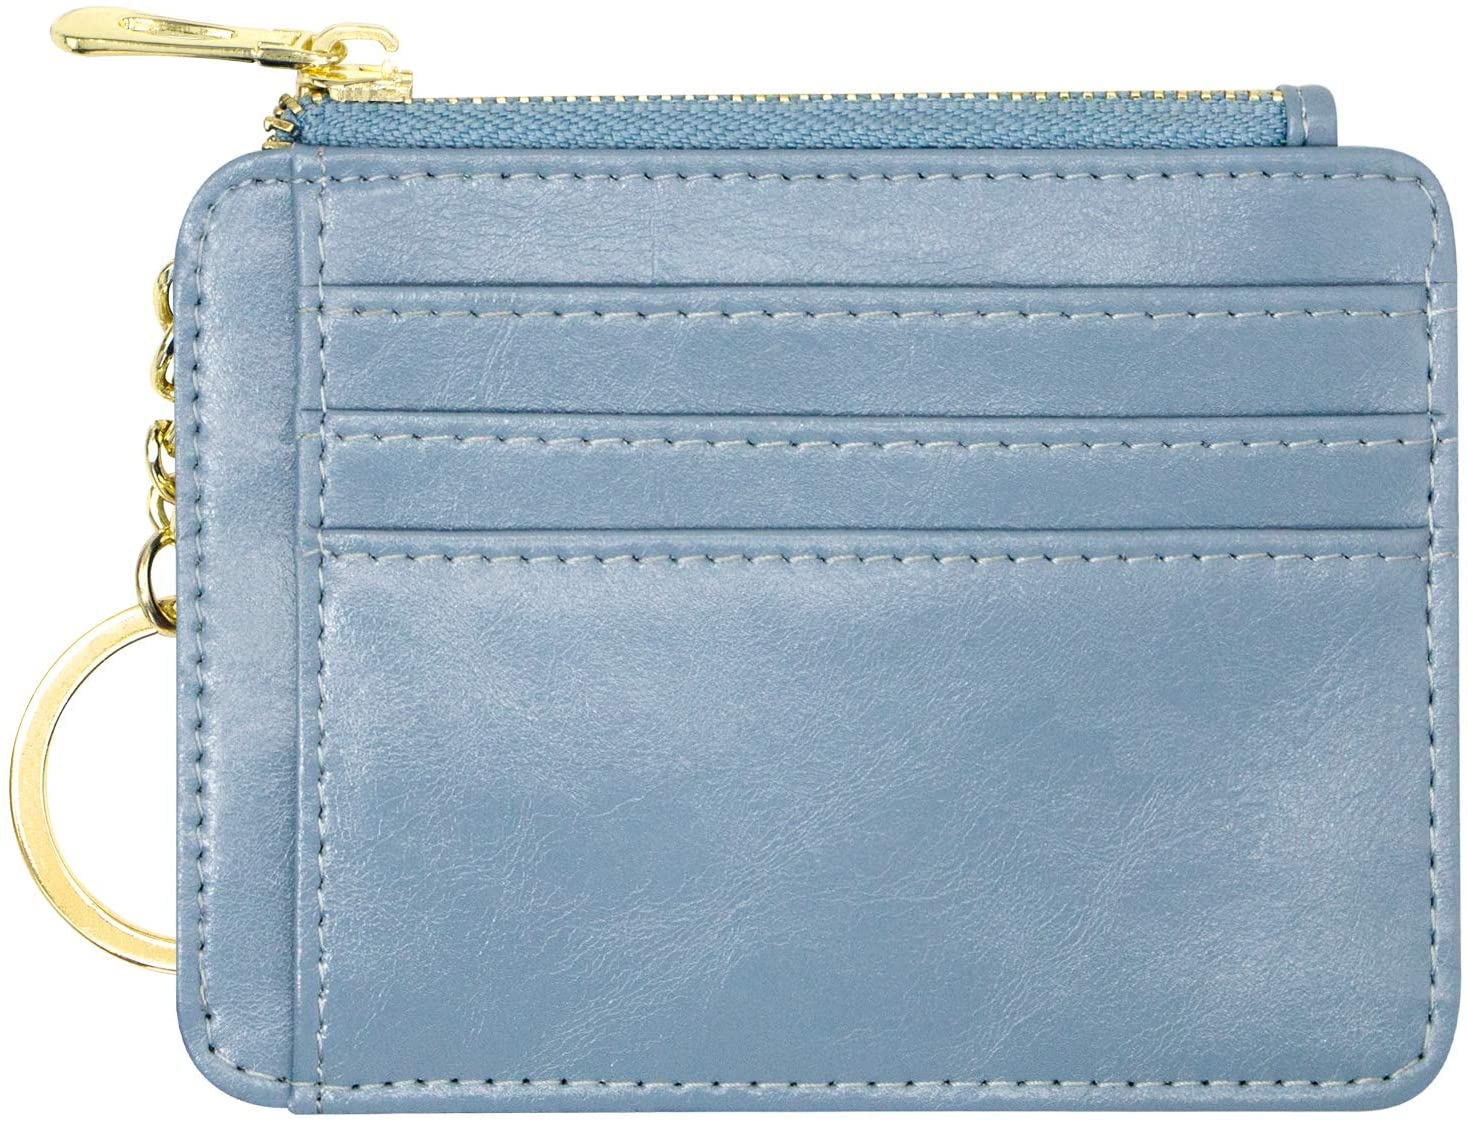 Padike Womens Slim Credit Card Holder Mini Front Pocket Wallet Coin Purse Keychain (Azure)